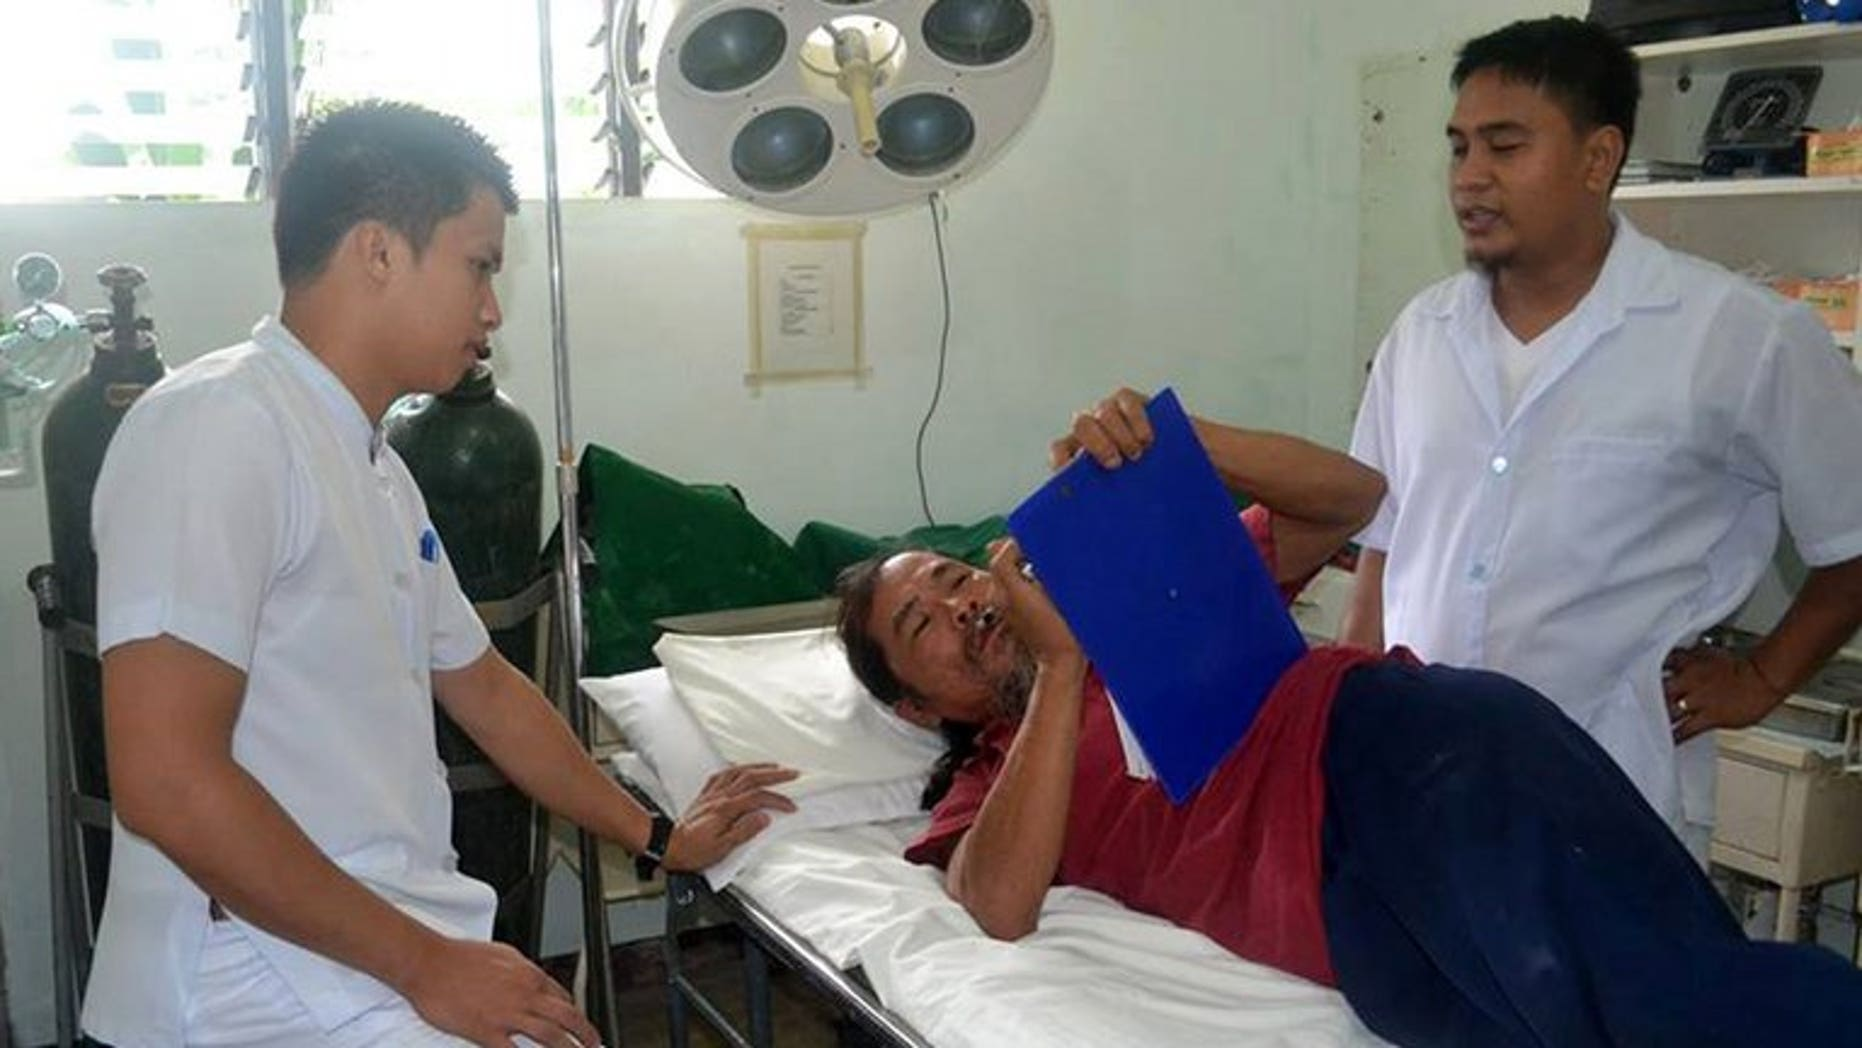 In this handout photo taken on September 4, 2013, Taiwanese fisherman Tsai Po, 54 (centre) is attended to by medical personnel at the Batanes General Hospital, on September 4, 2013. Philippine police say there is strong evidence to charge Tsai -- detained after he strayed into the archipelago's waters -- in an incident that is threatening reviving relations between the neighbours.